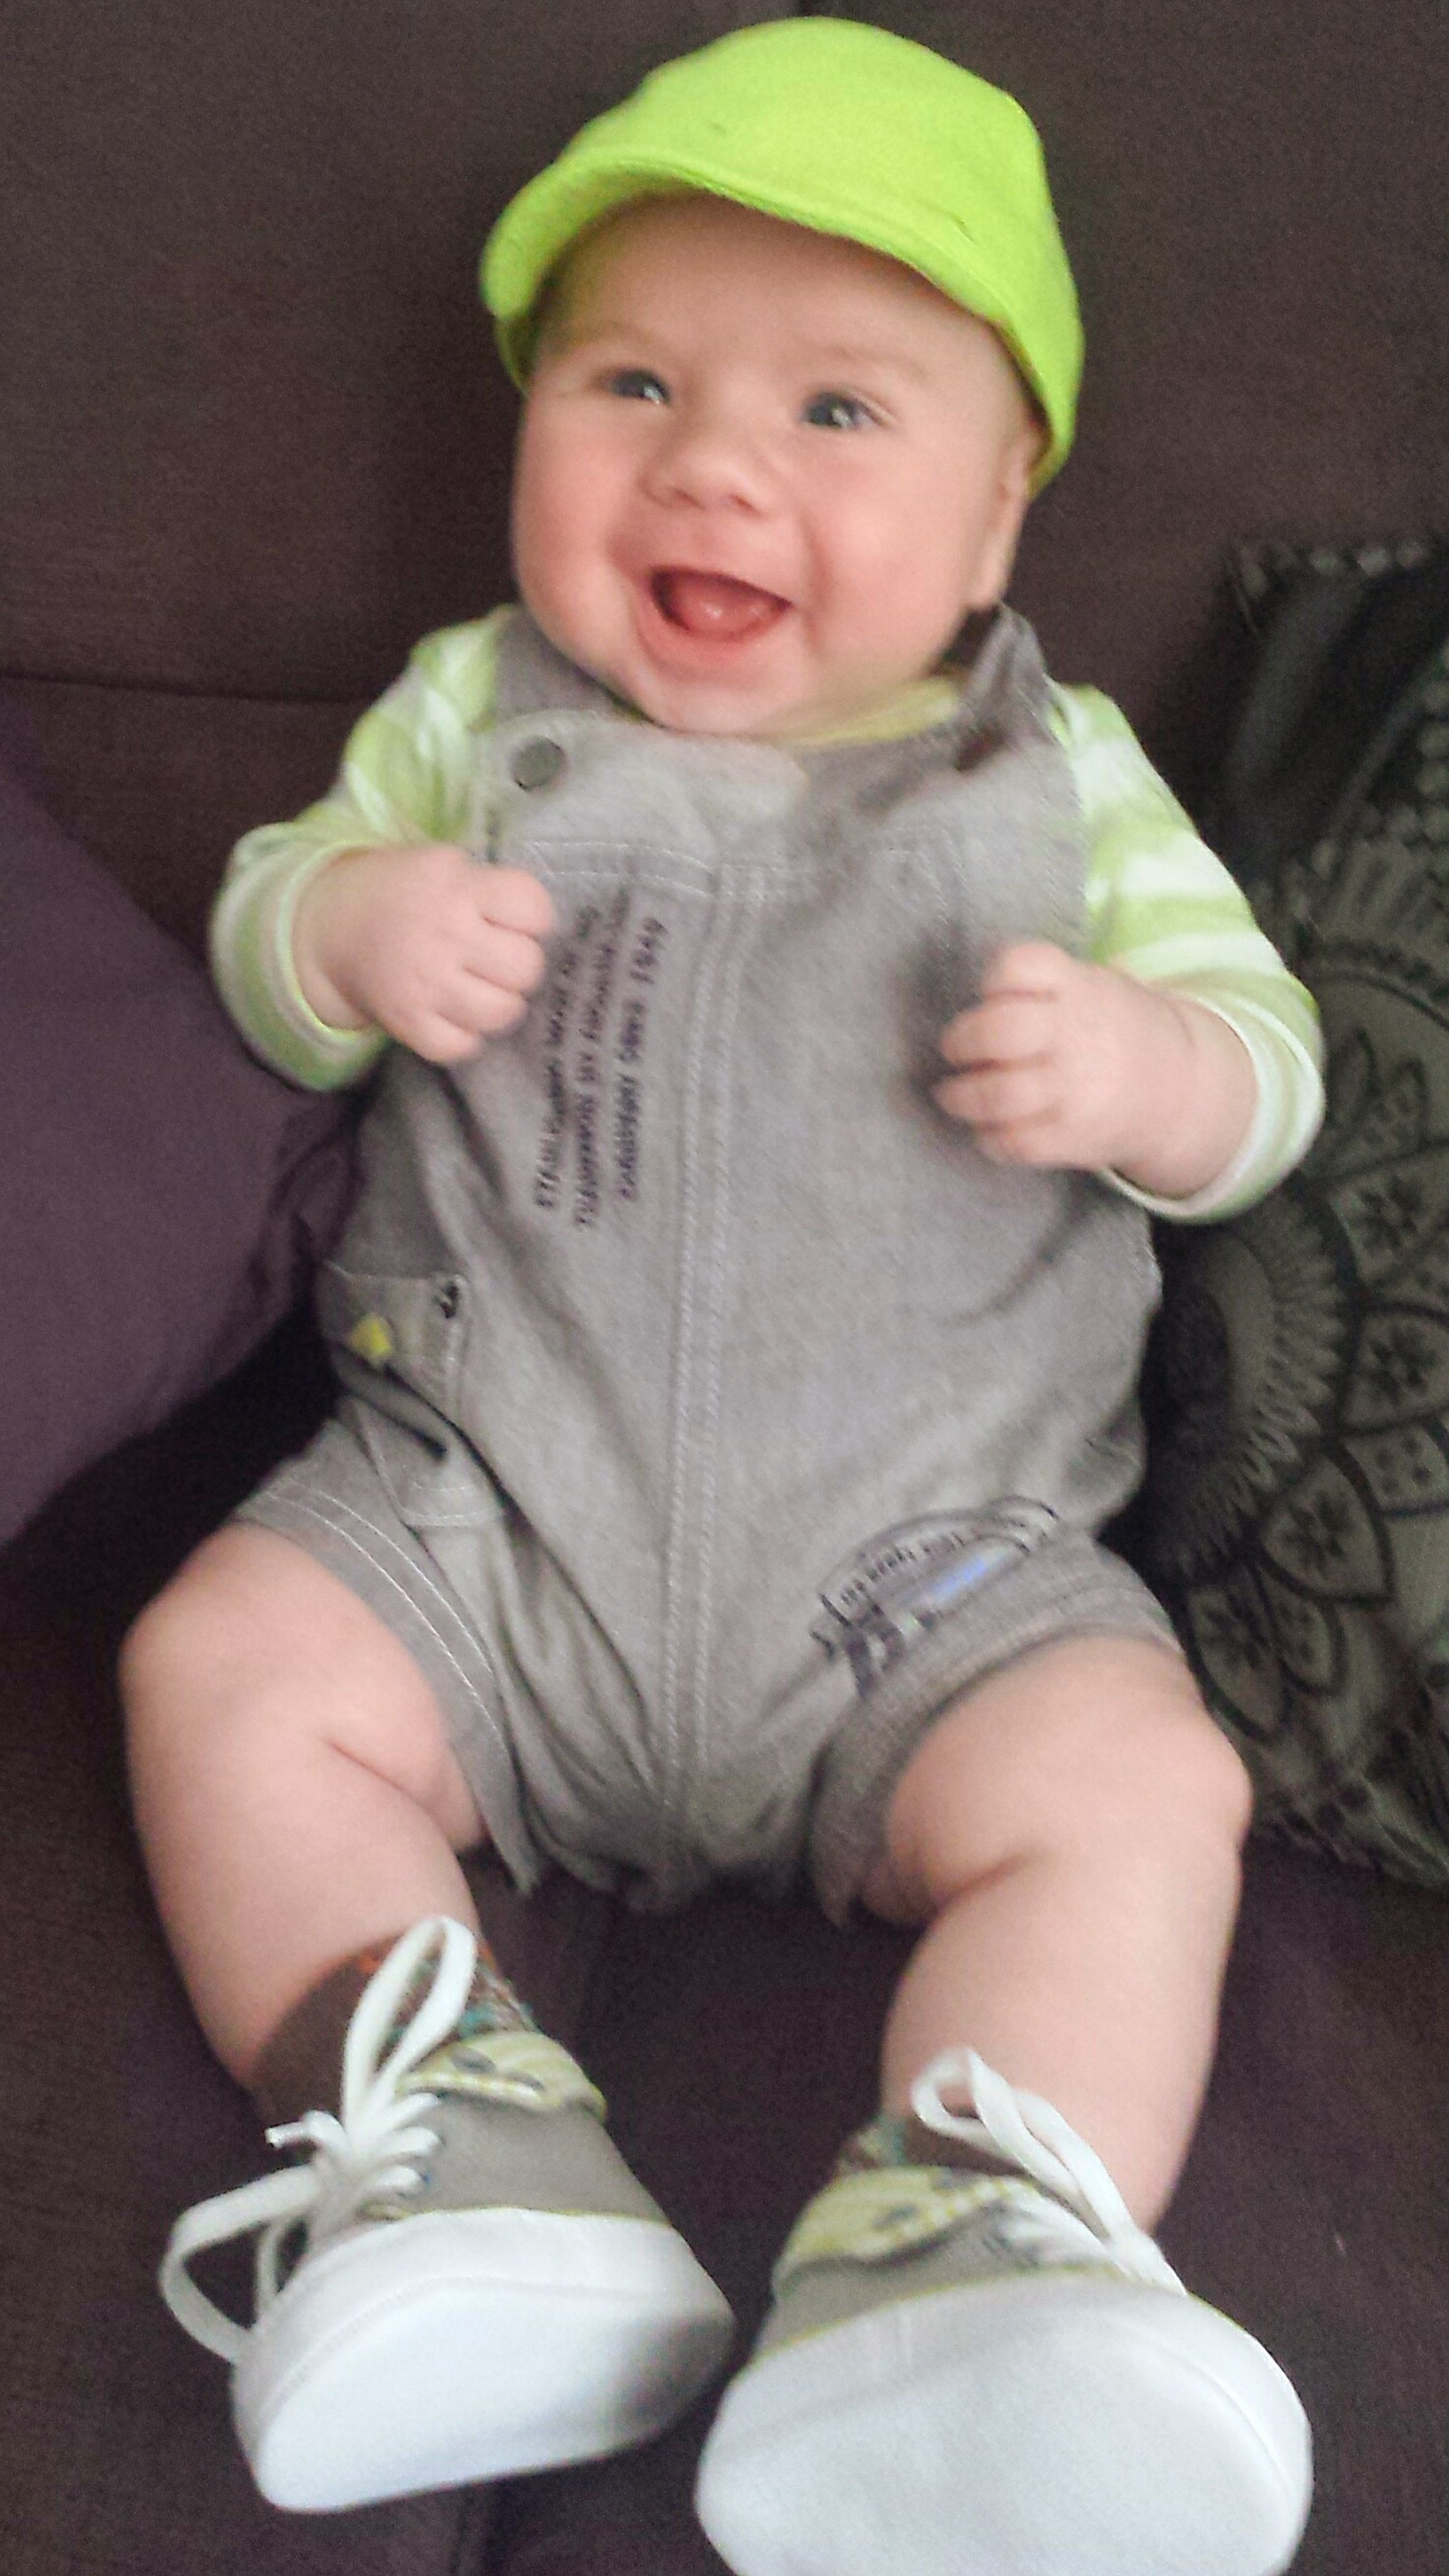 childhood, innocence, elementary age, cute, person, baby, babyhood, casual clothing, toddler, lifestyles, boys, girls, indoors, holding, leisure activity, front view, full length, three quarter length